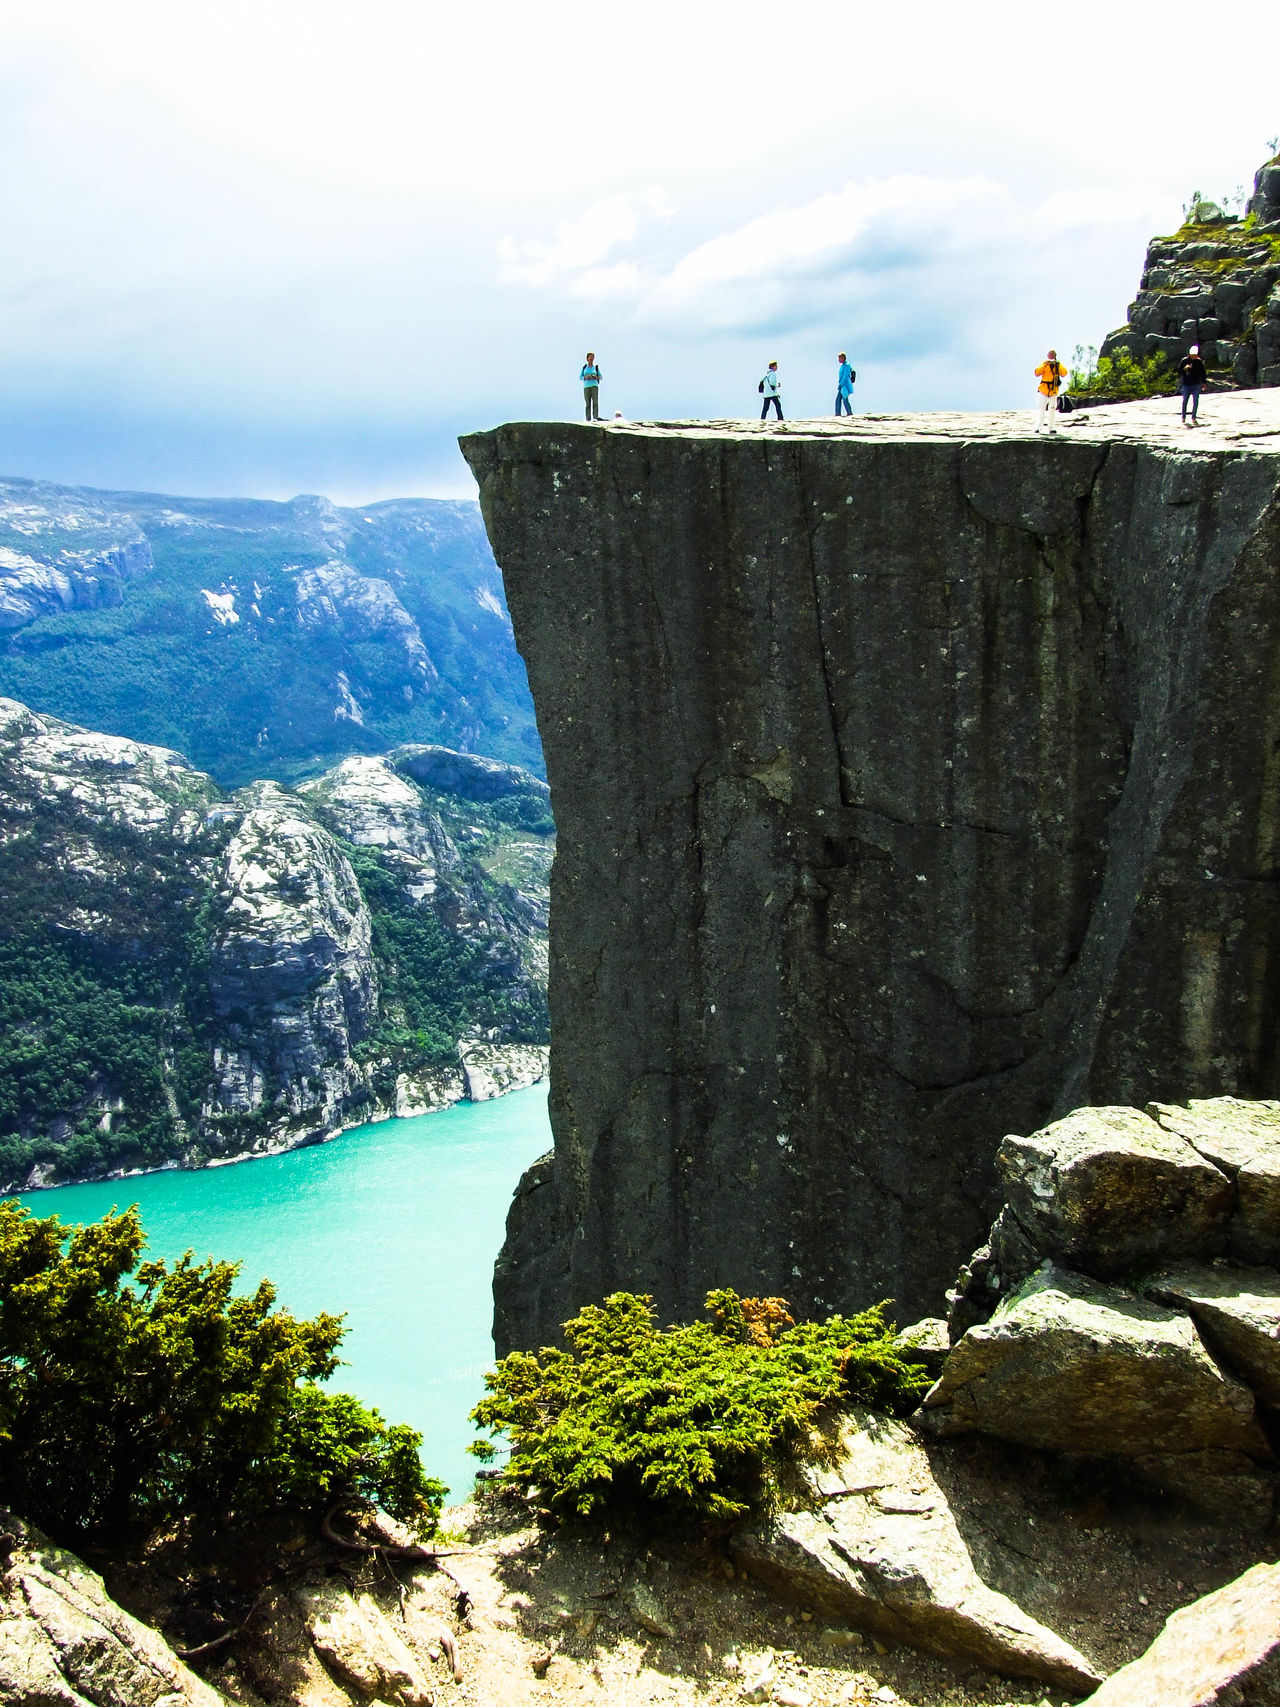 Preikestolen (The Pulpit Rock Beauty In Nature Live For The Story Lysefjord Nature Norway Outdoors Preikestolen Rock - Object The Pulpit Roc